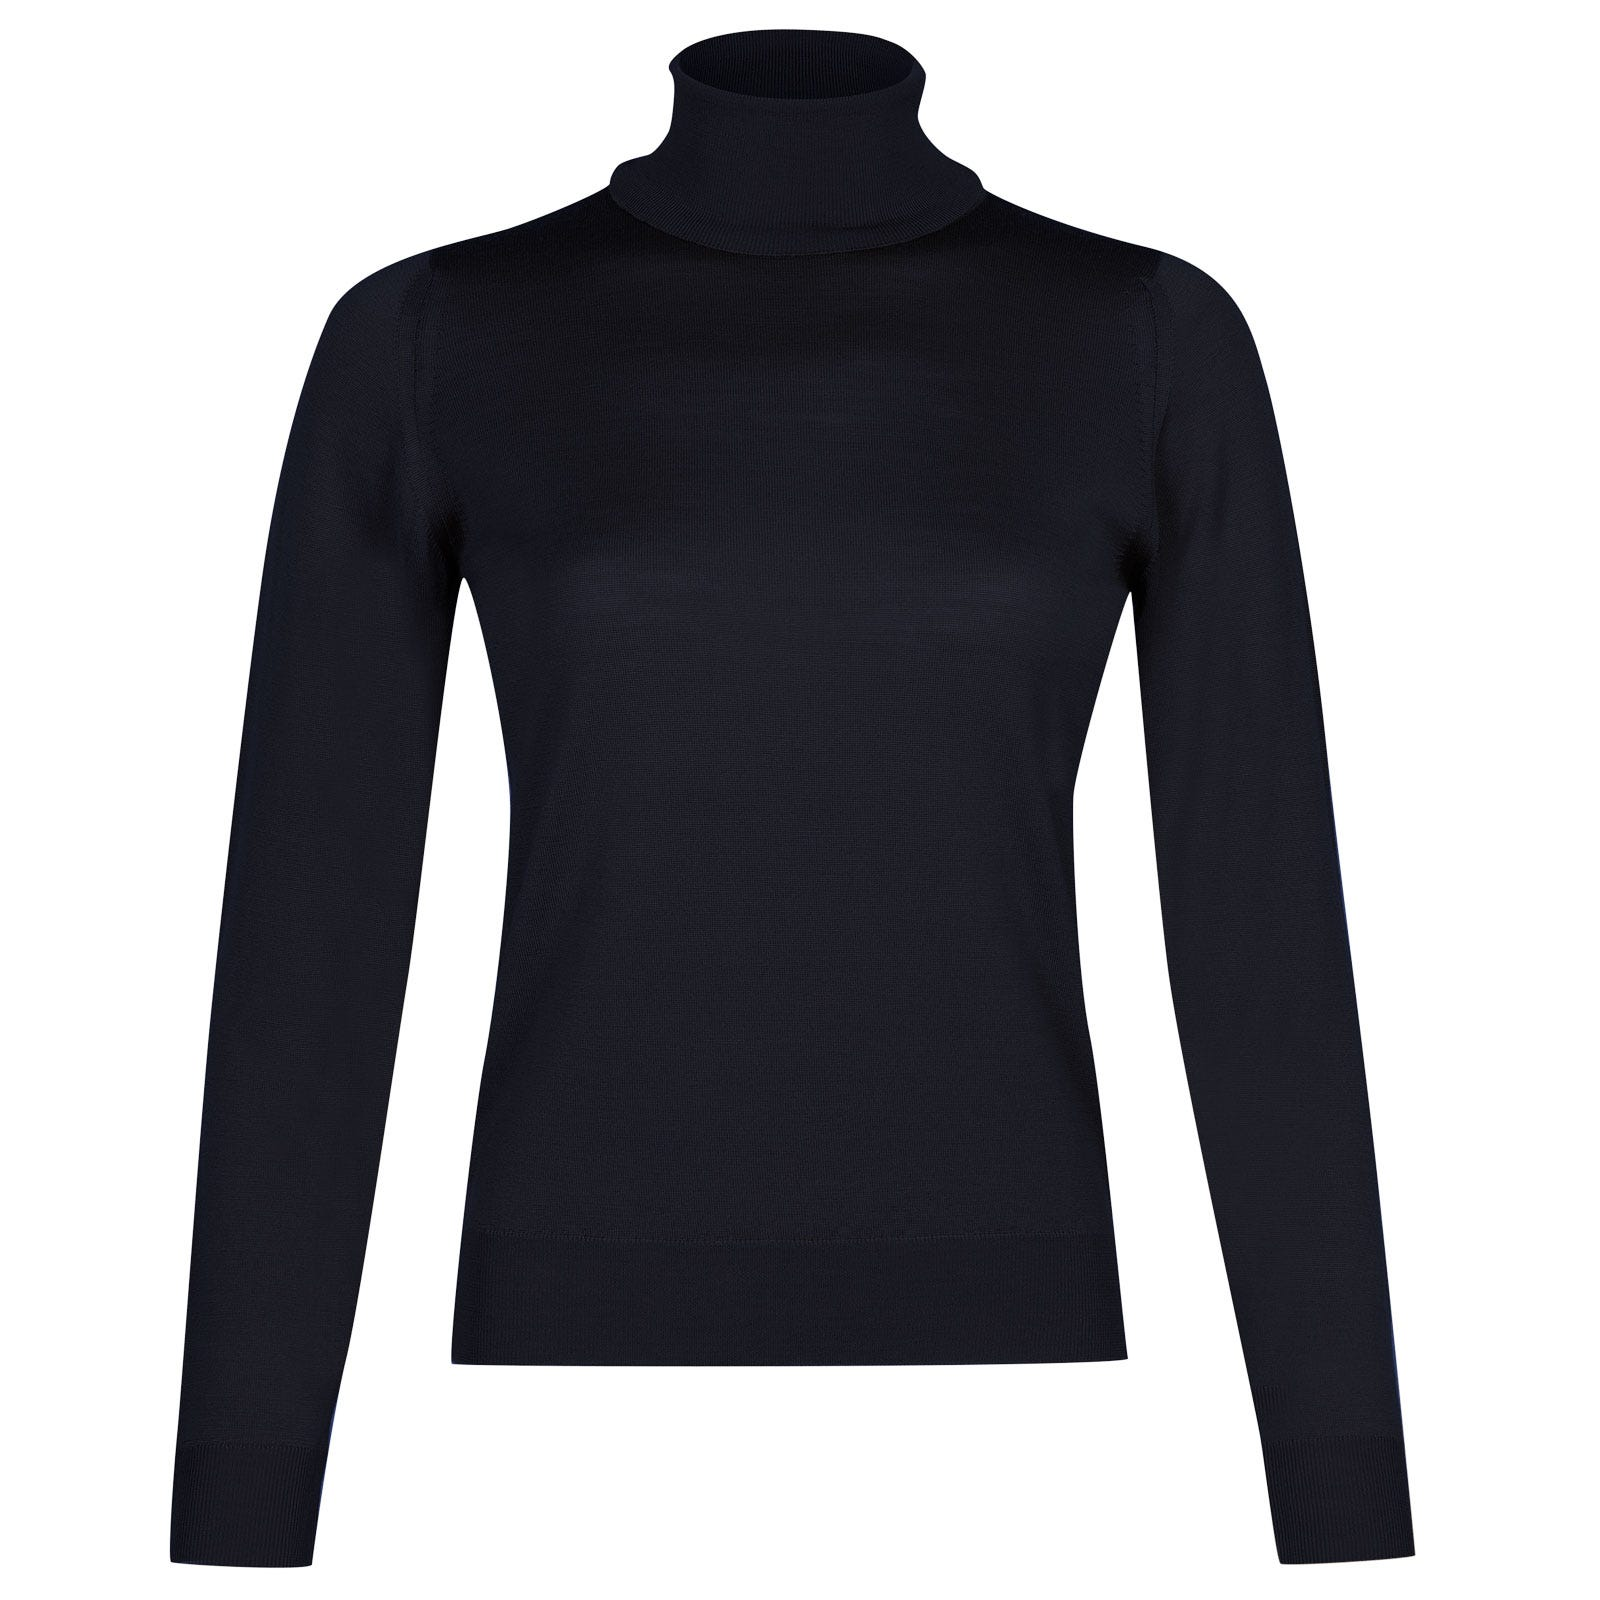 John Smedley siena Merino Wool Sweater in Midnight-L